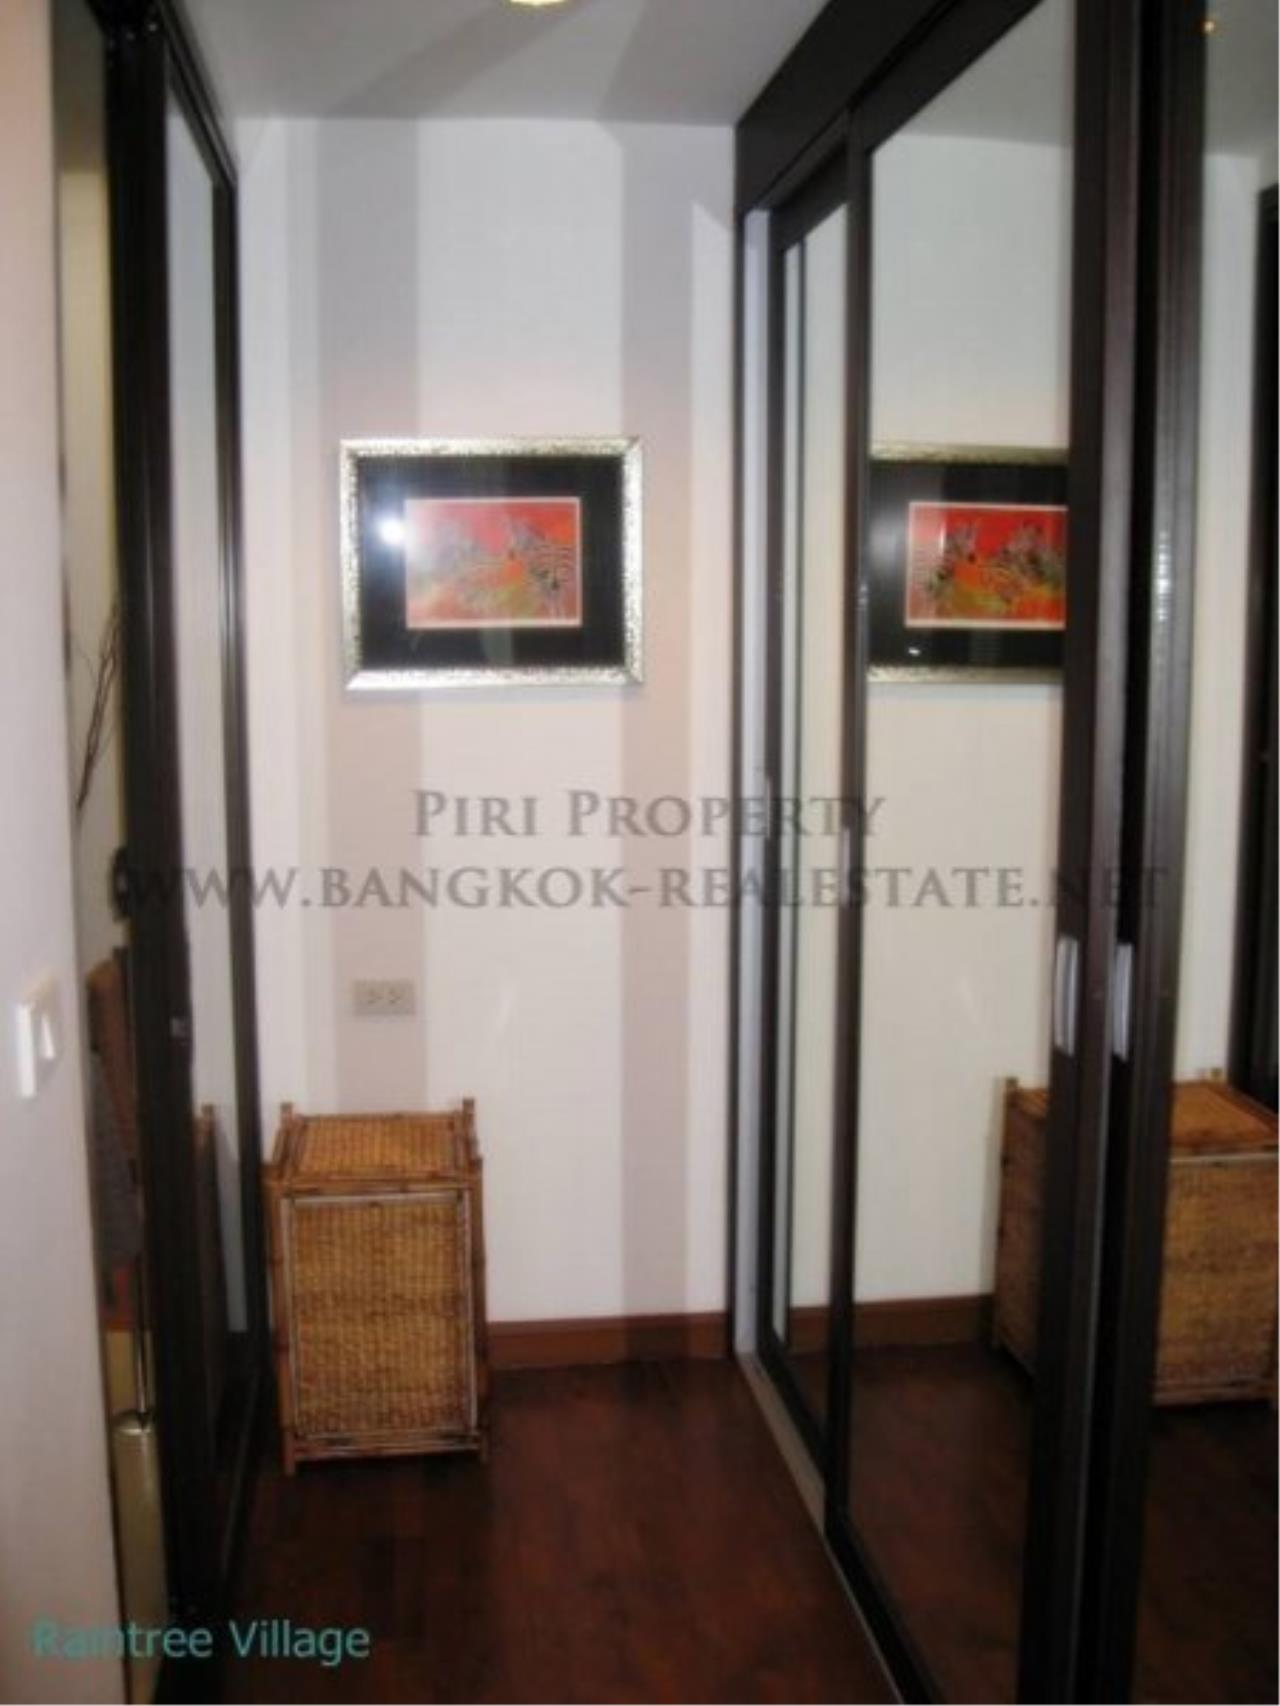 Piri Property Agency's Townhouse Apartment nearby Emporium for Rent - 3 plus 1 Bedroom 16